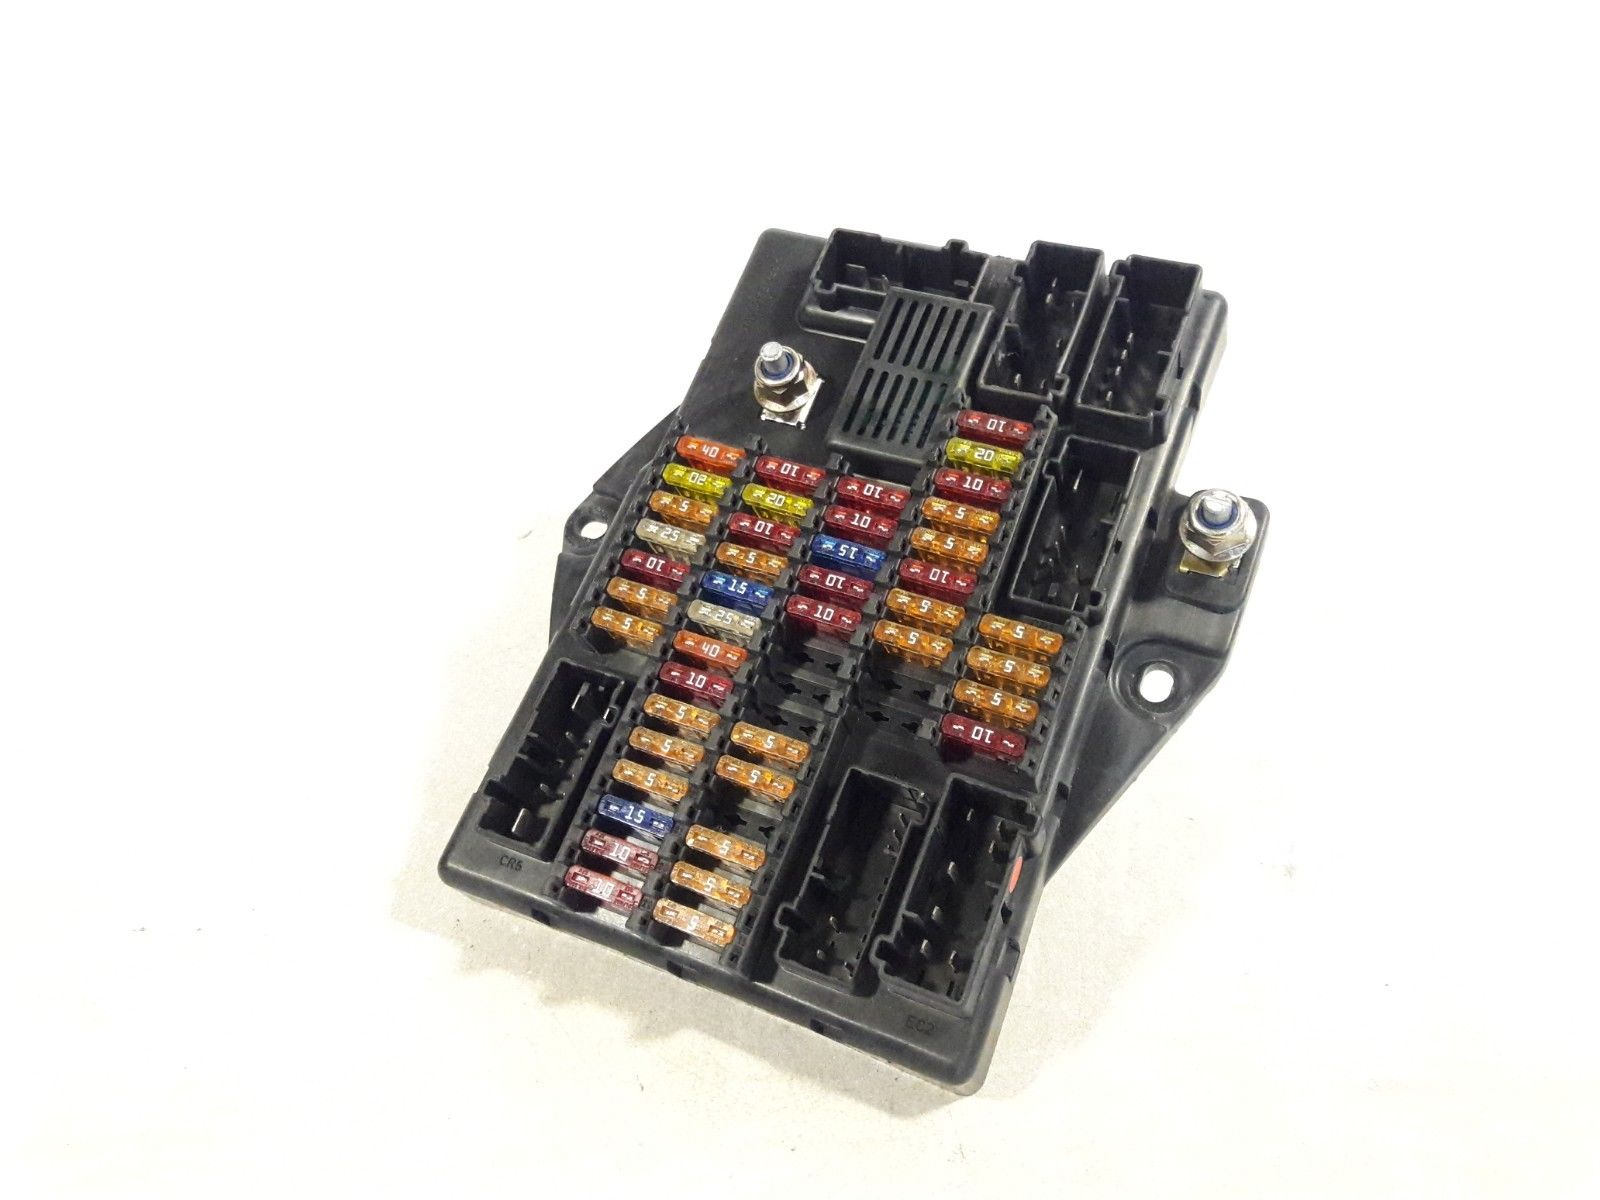 2004 - 2005 Jaguar XJ8 Interior <em>Fuse</em> And Relay